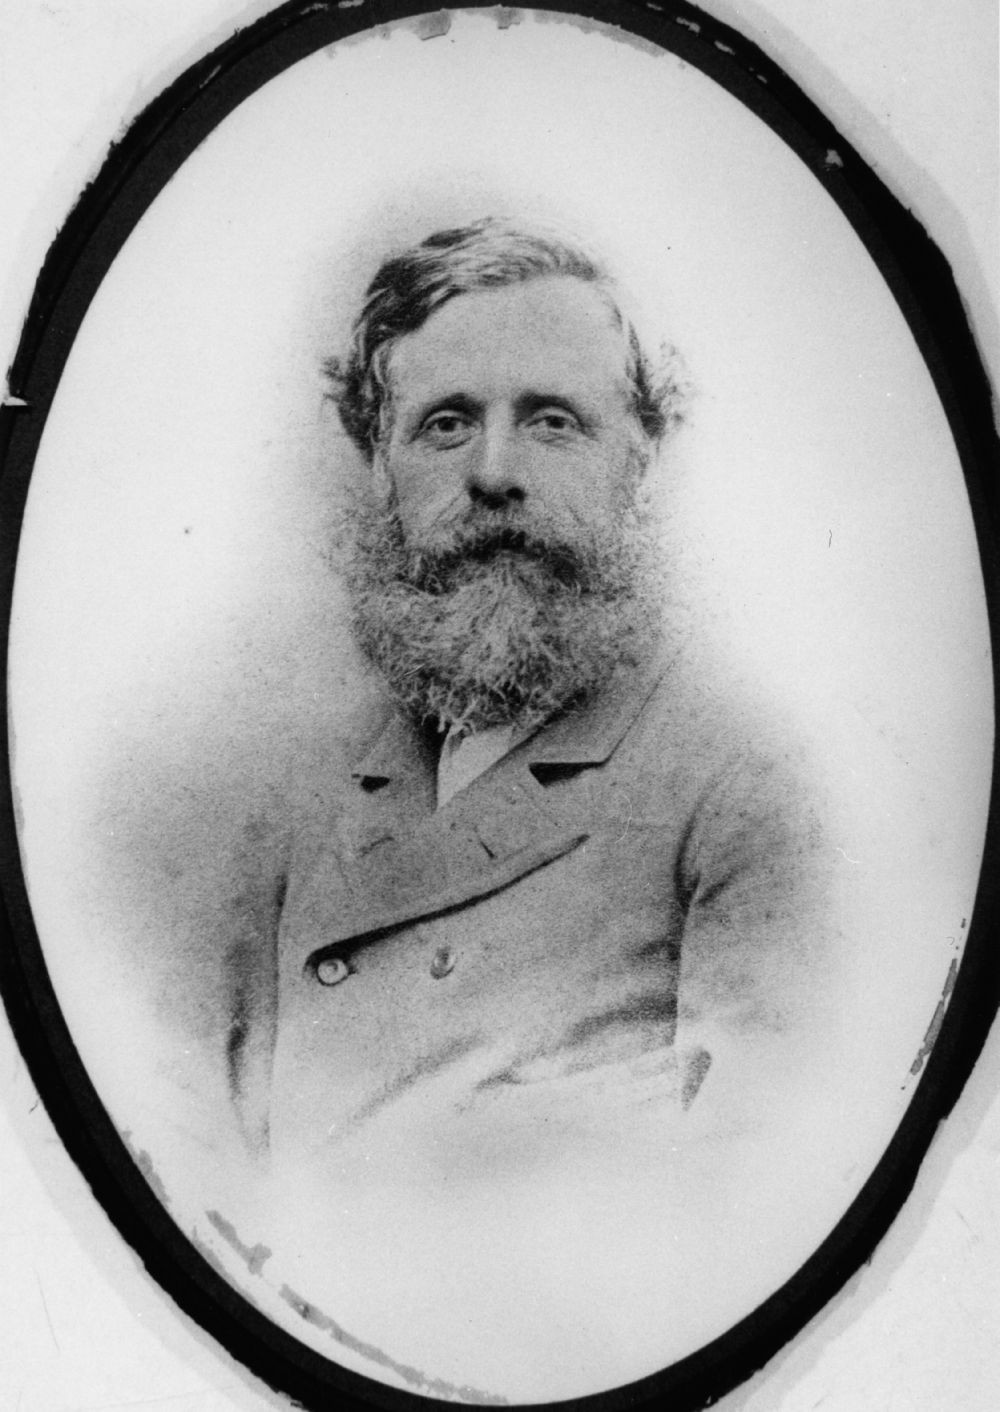 Portrait of James Josey